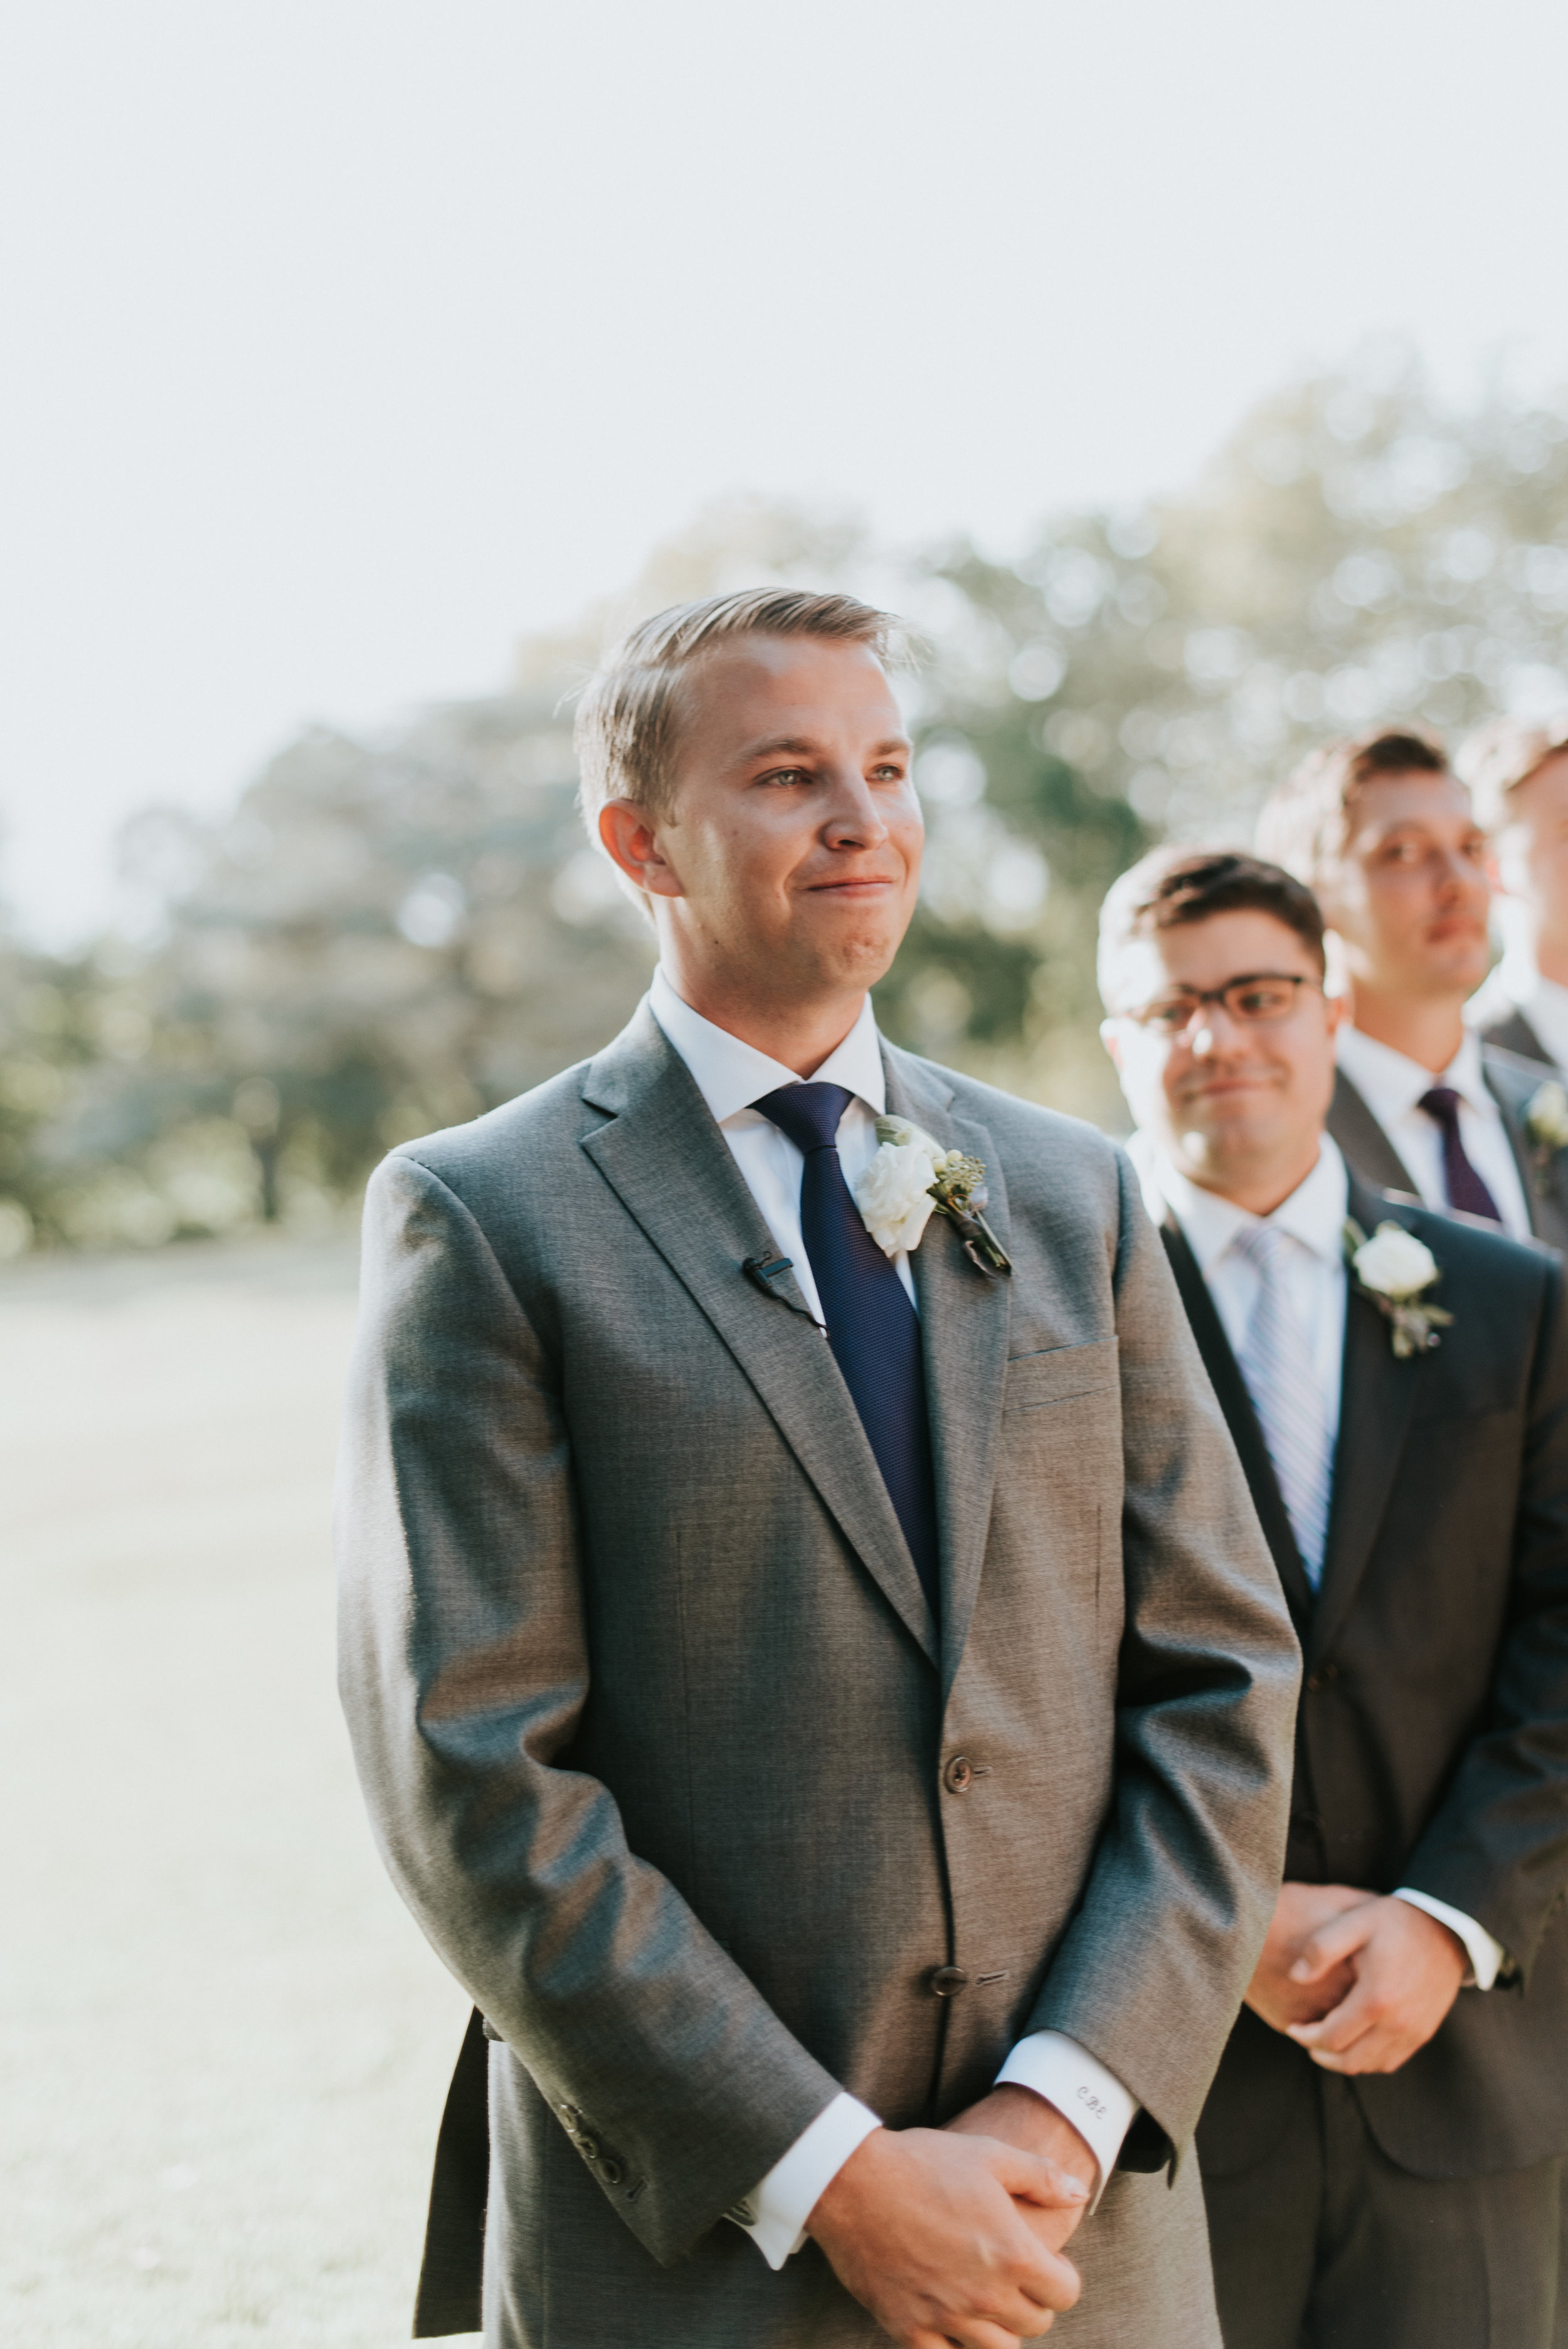 Rustic Oyster Themed Eastern Shore Maryland Outdoor Wedding by East Made Event Company Wedding Planner and Bekah Kay Creative740.jpg